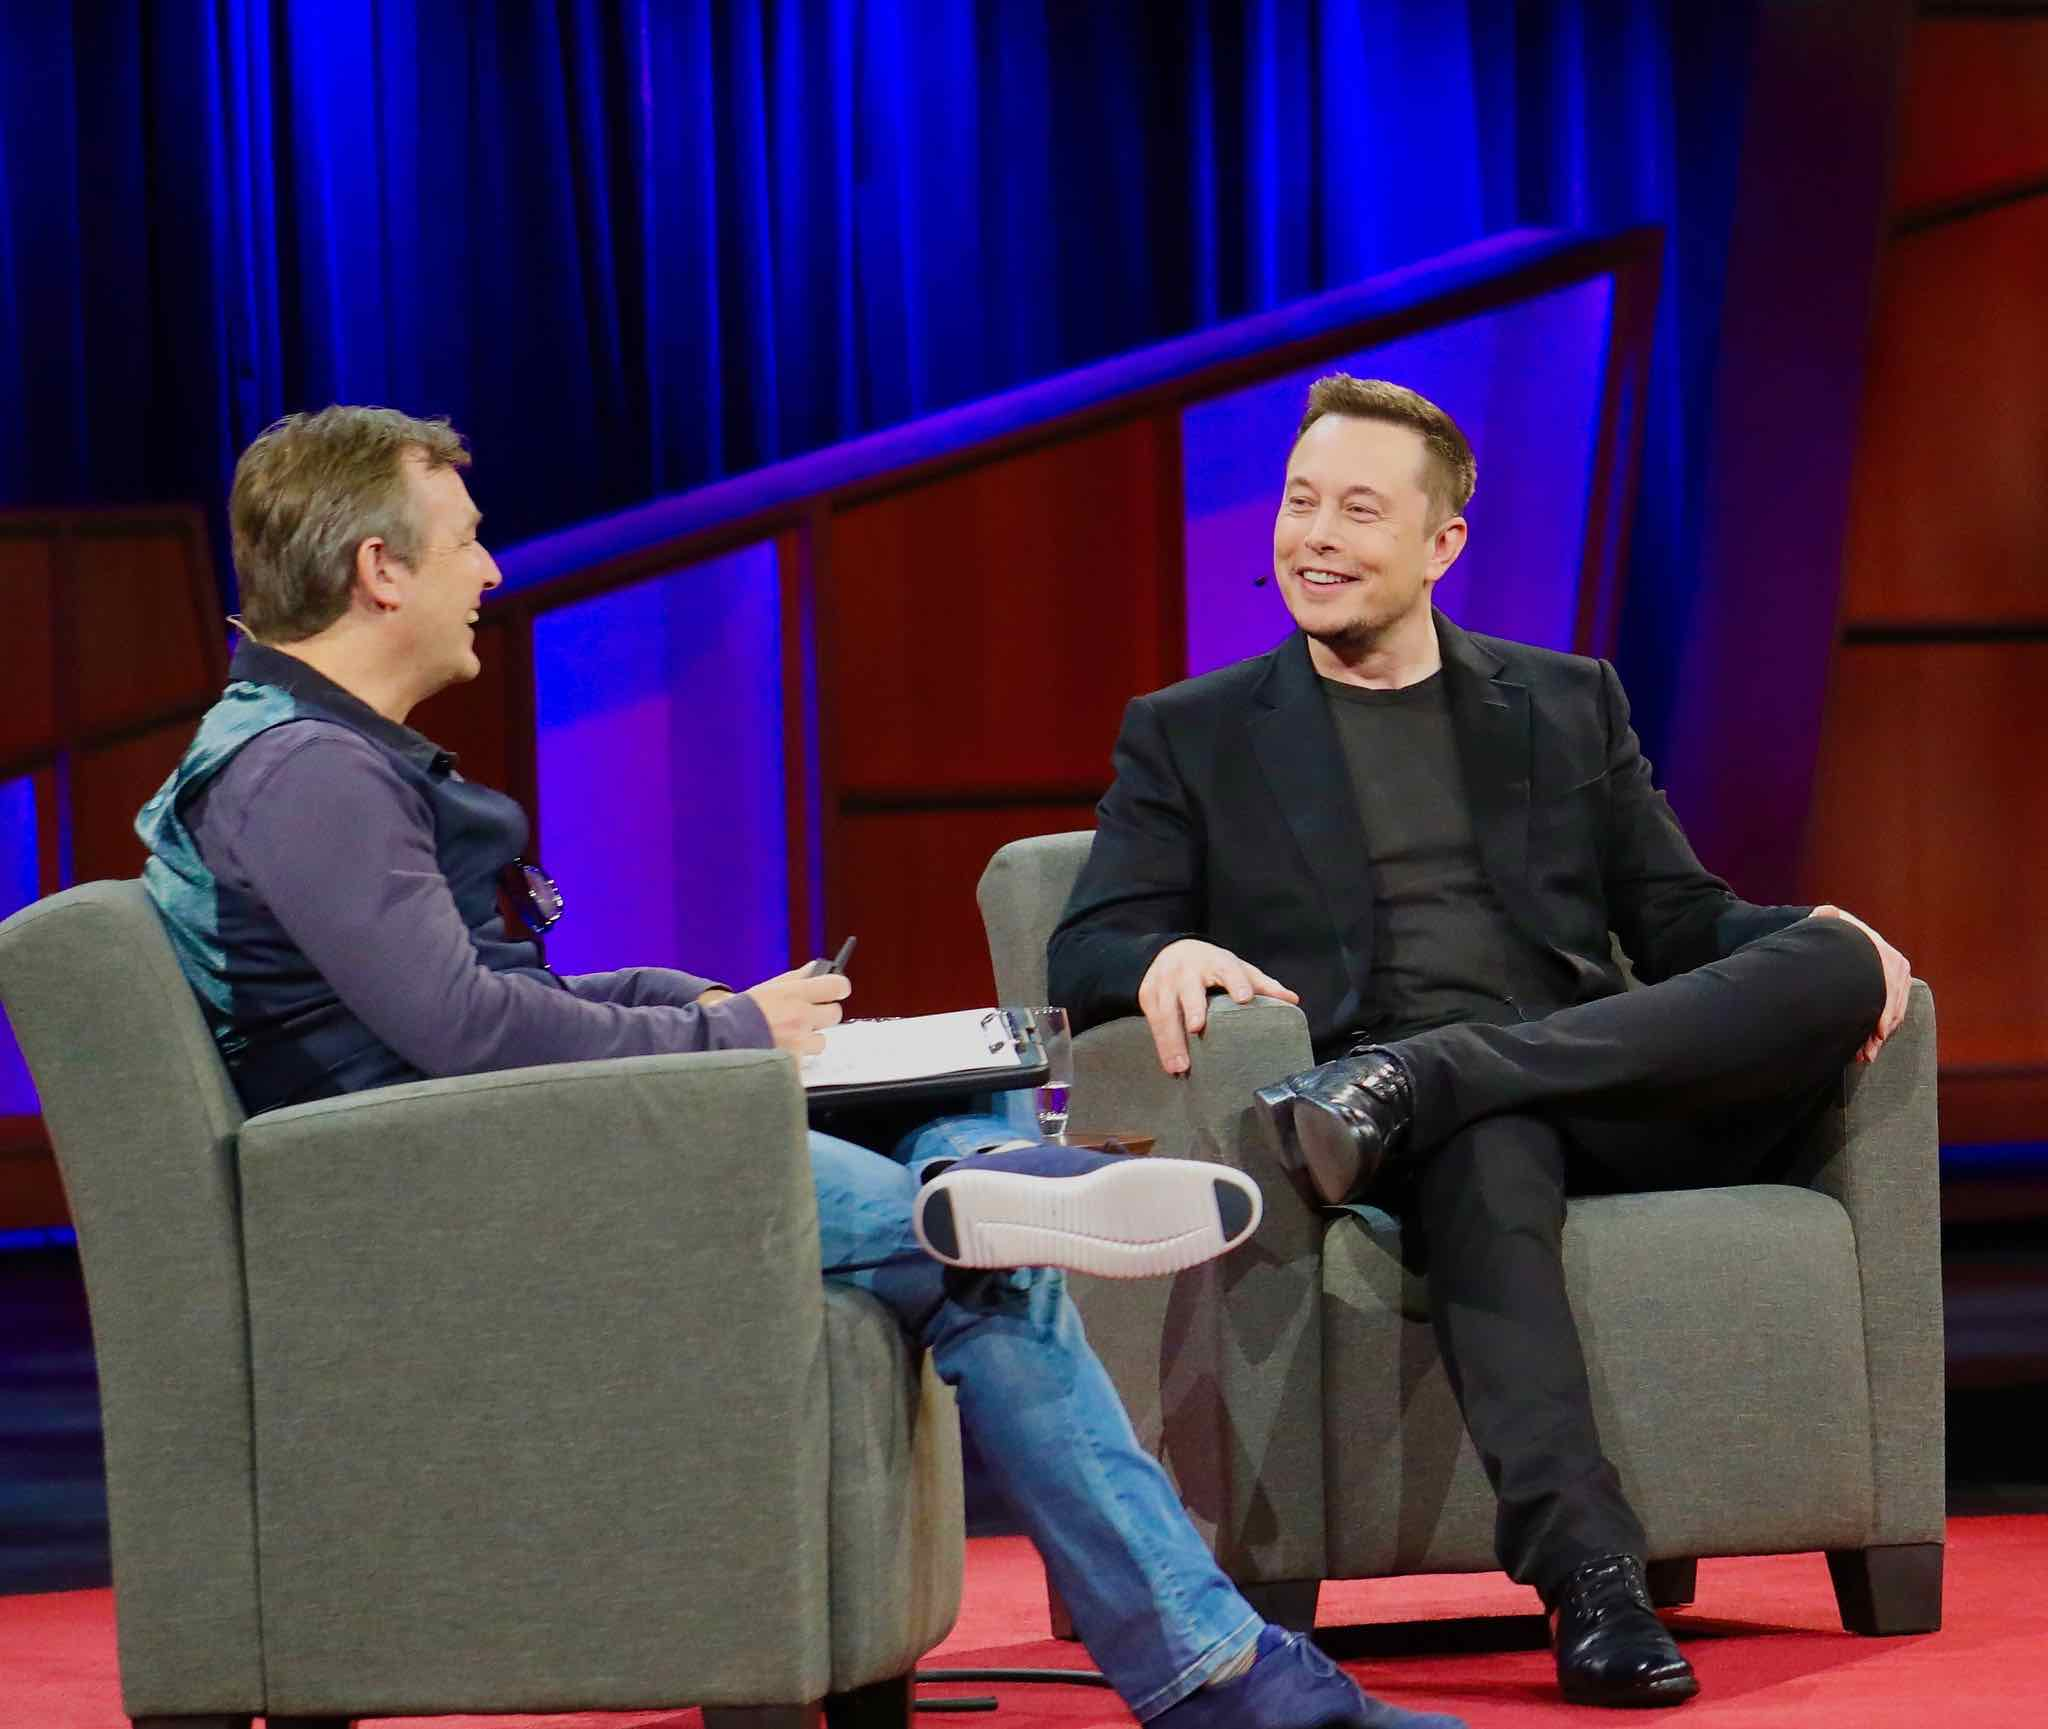 Elon Musk Explains Why He Thinks Flying Cars Are a Really Bad Idea